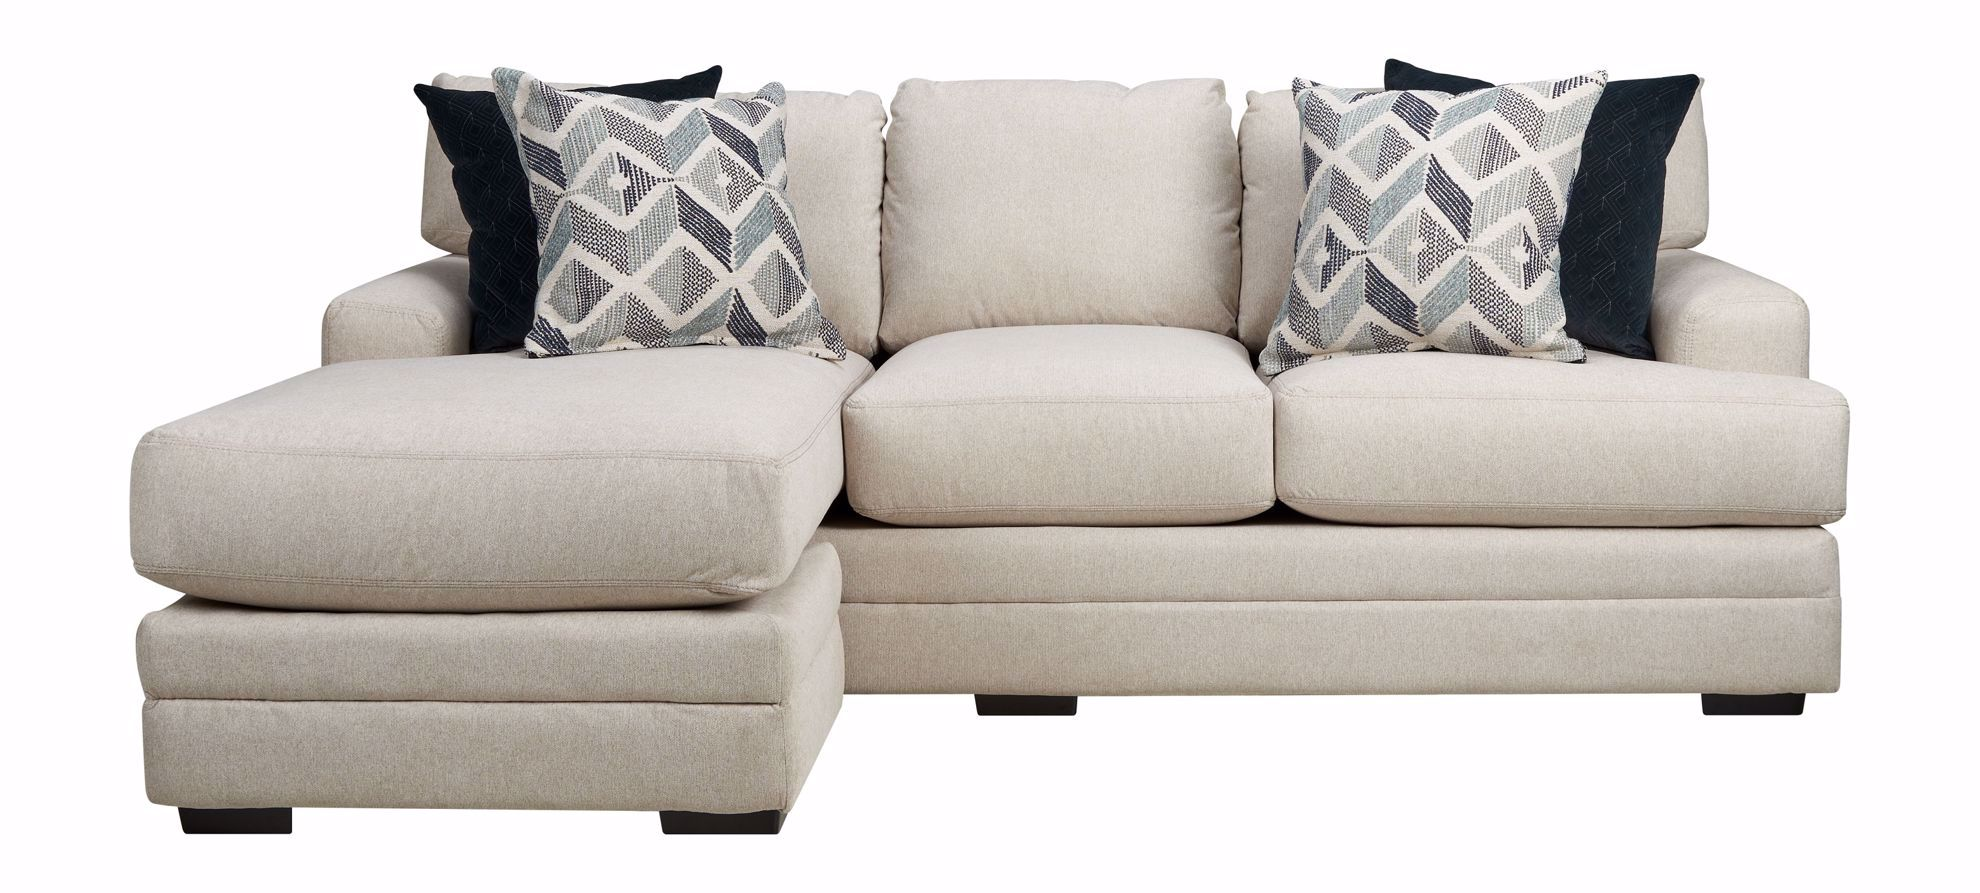 Picture of Laken Cream Sofa Chaise